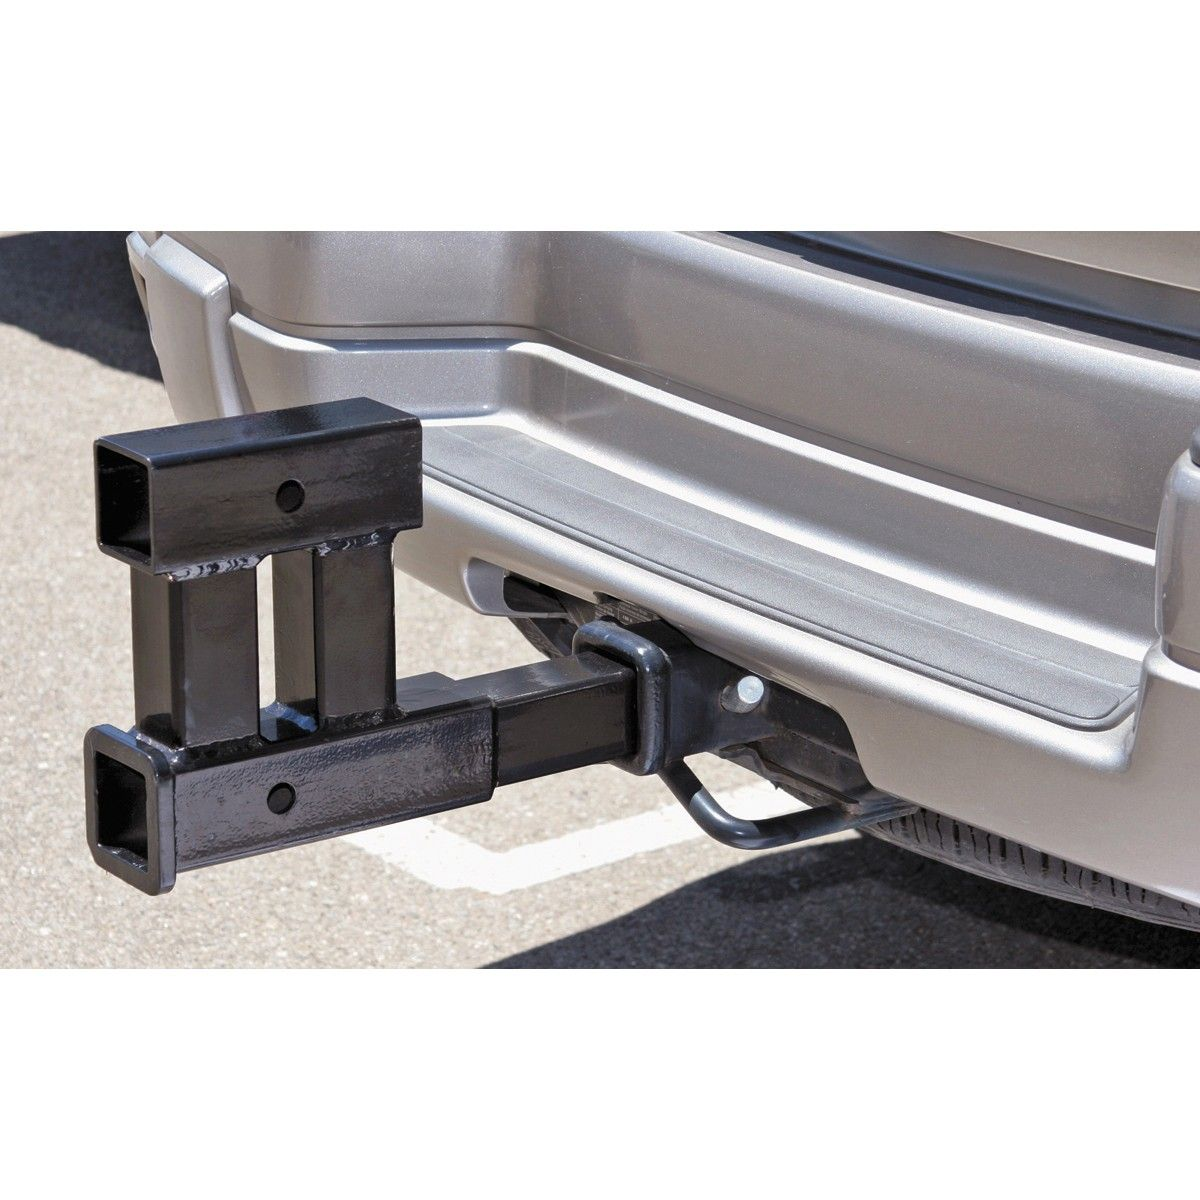 Dual Hitch Extender Hitch accessories, Trailer, Cargo rack